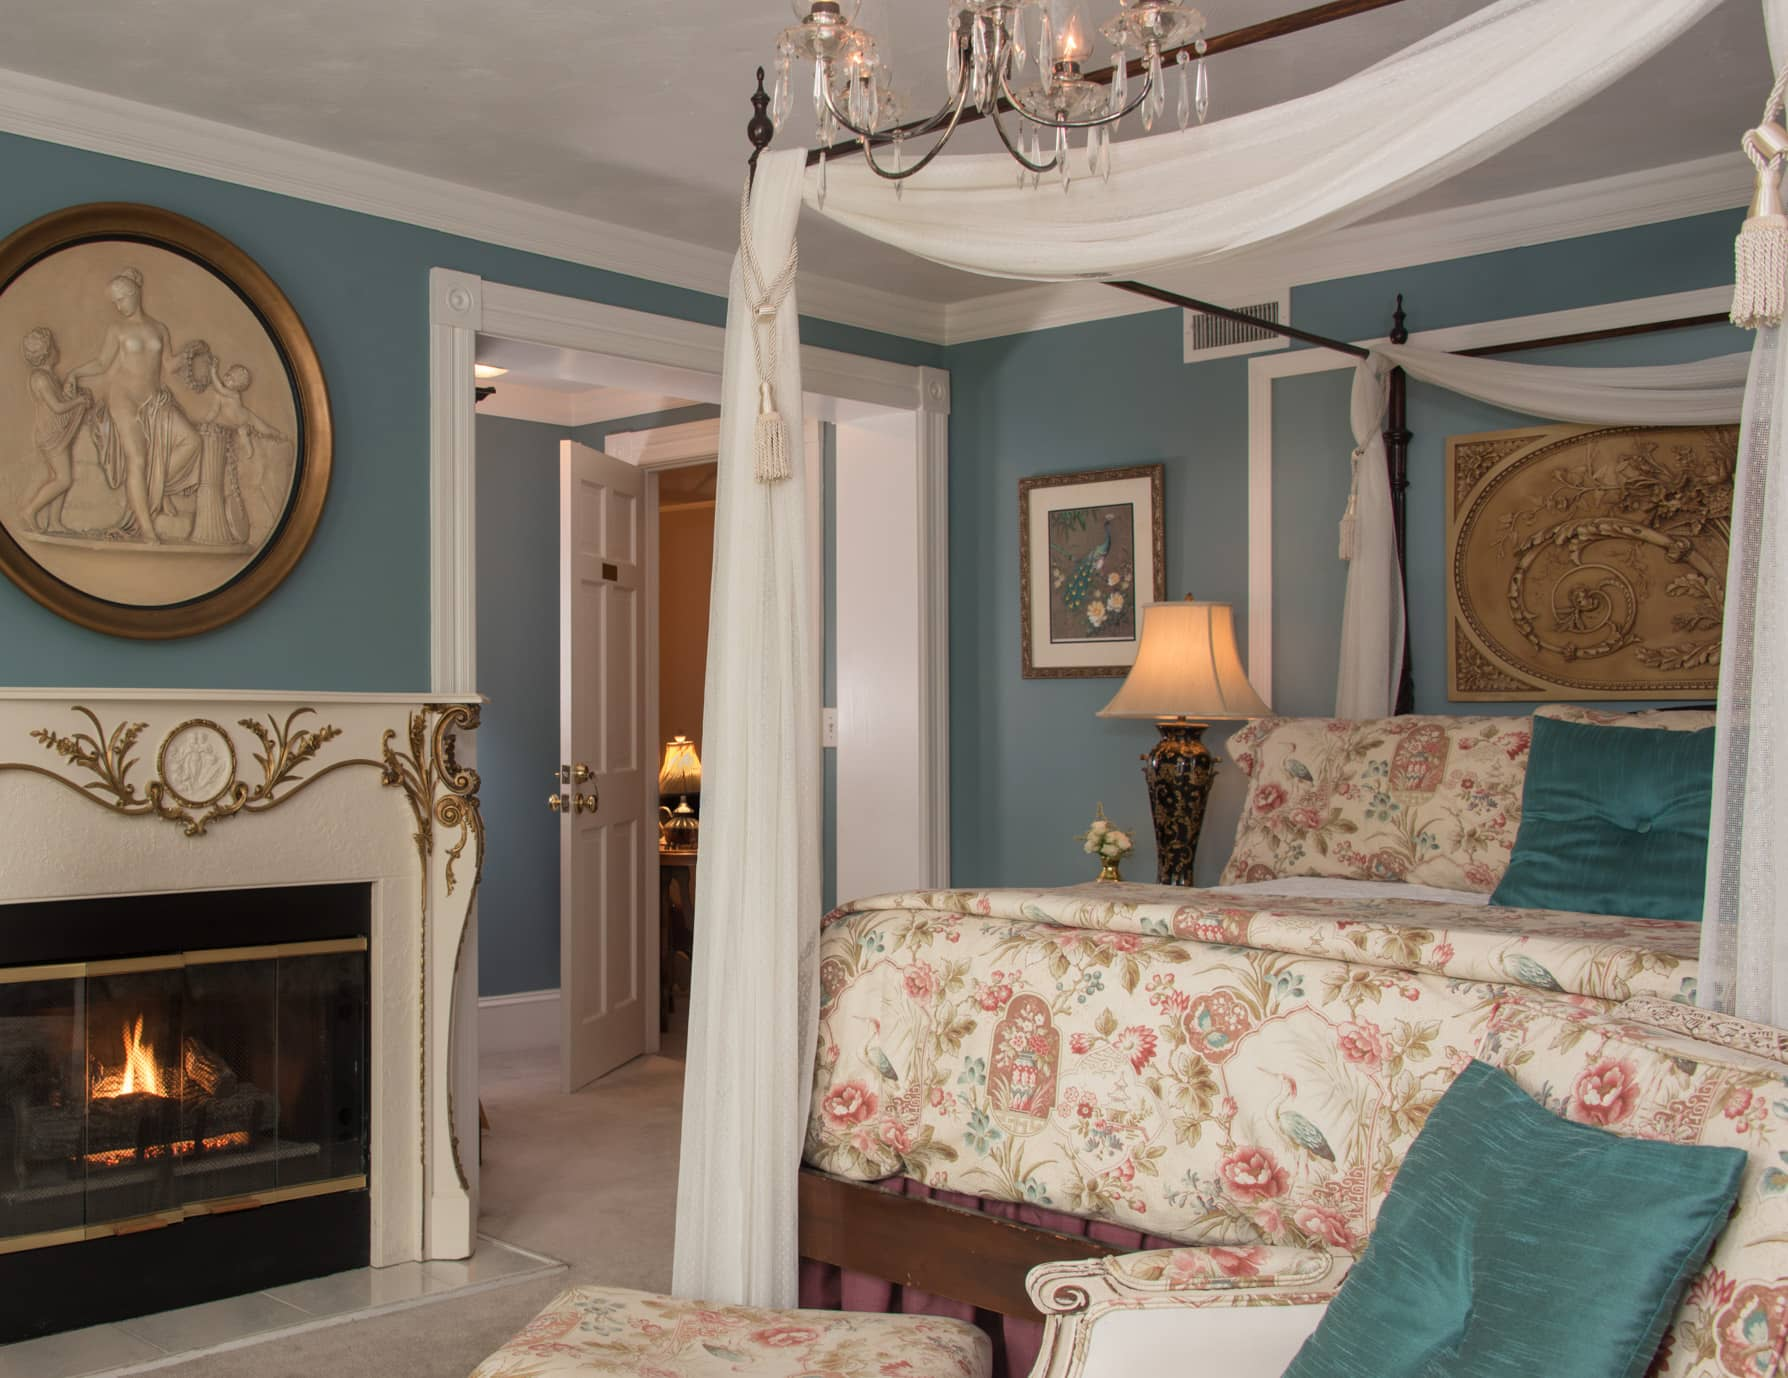 Queen Bed and Cozy Fireplace at Our Roanoke Island B&B